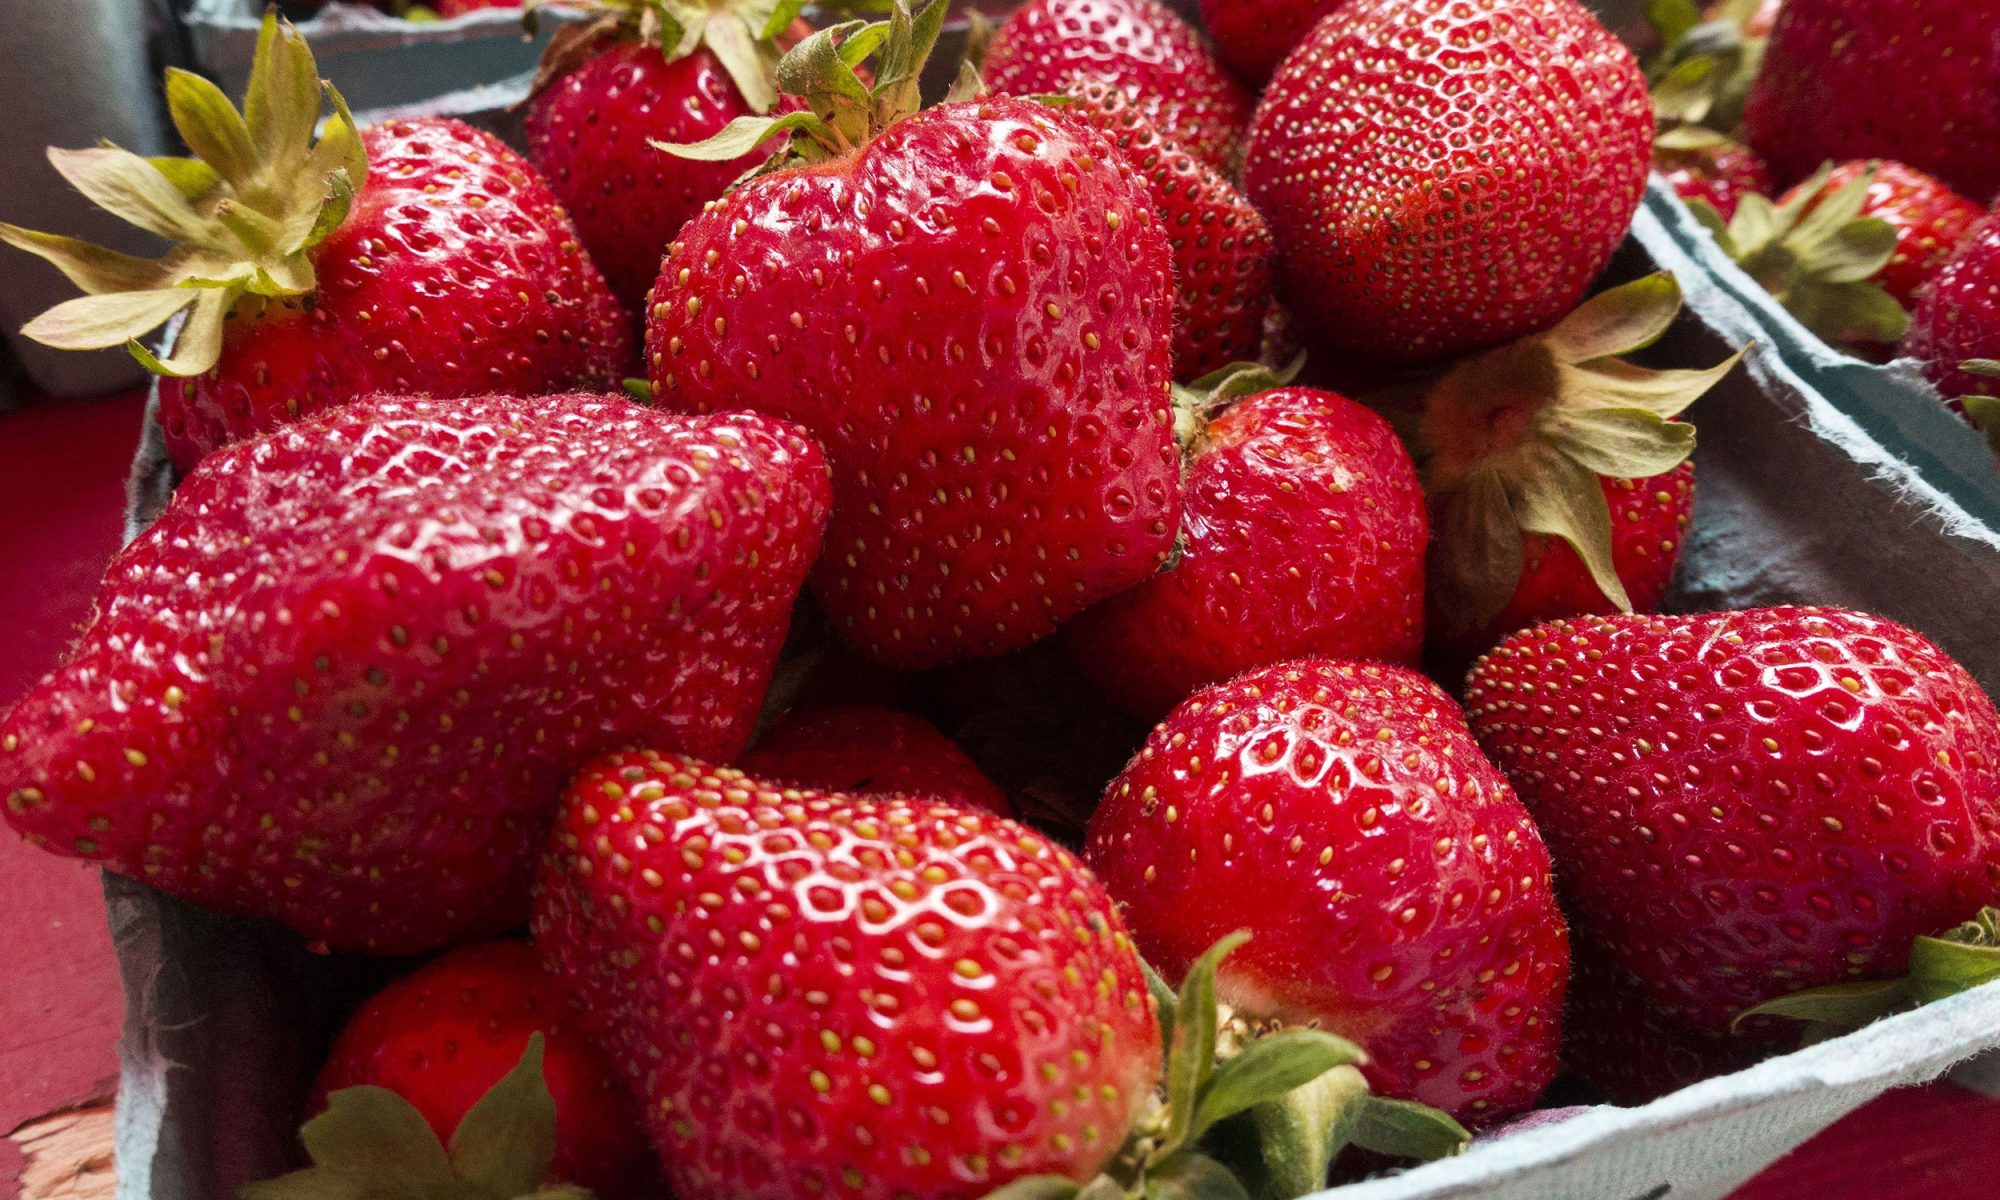 EC: How to Keep Strawberries Fresh for As Long As Possible